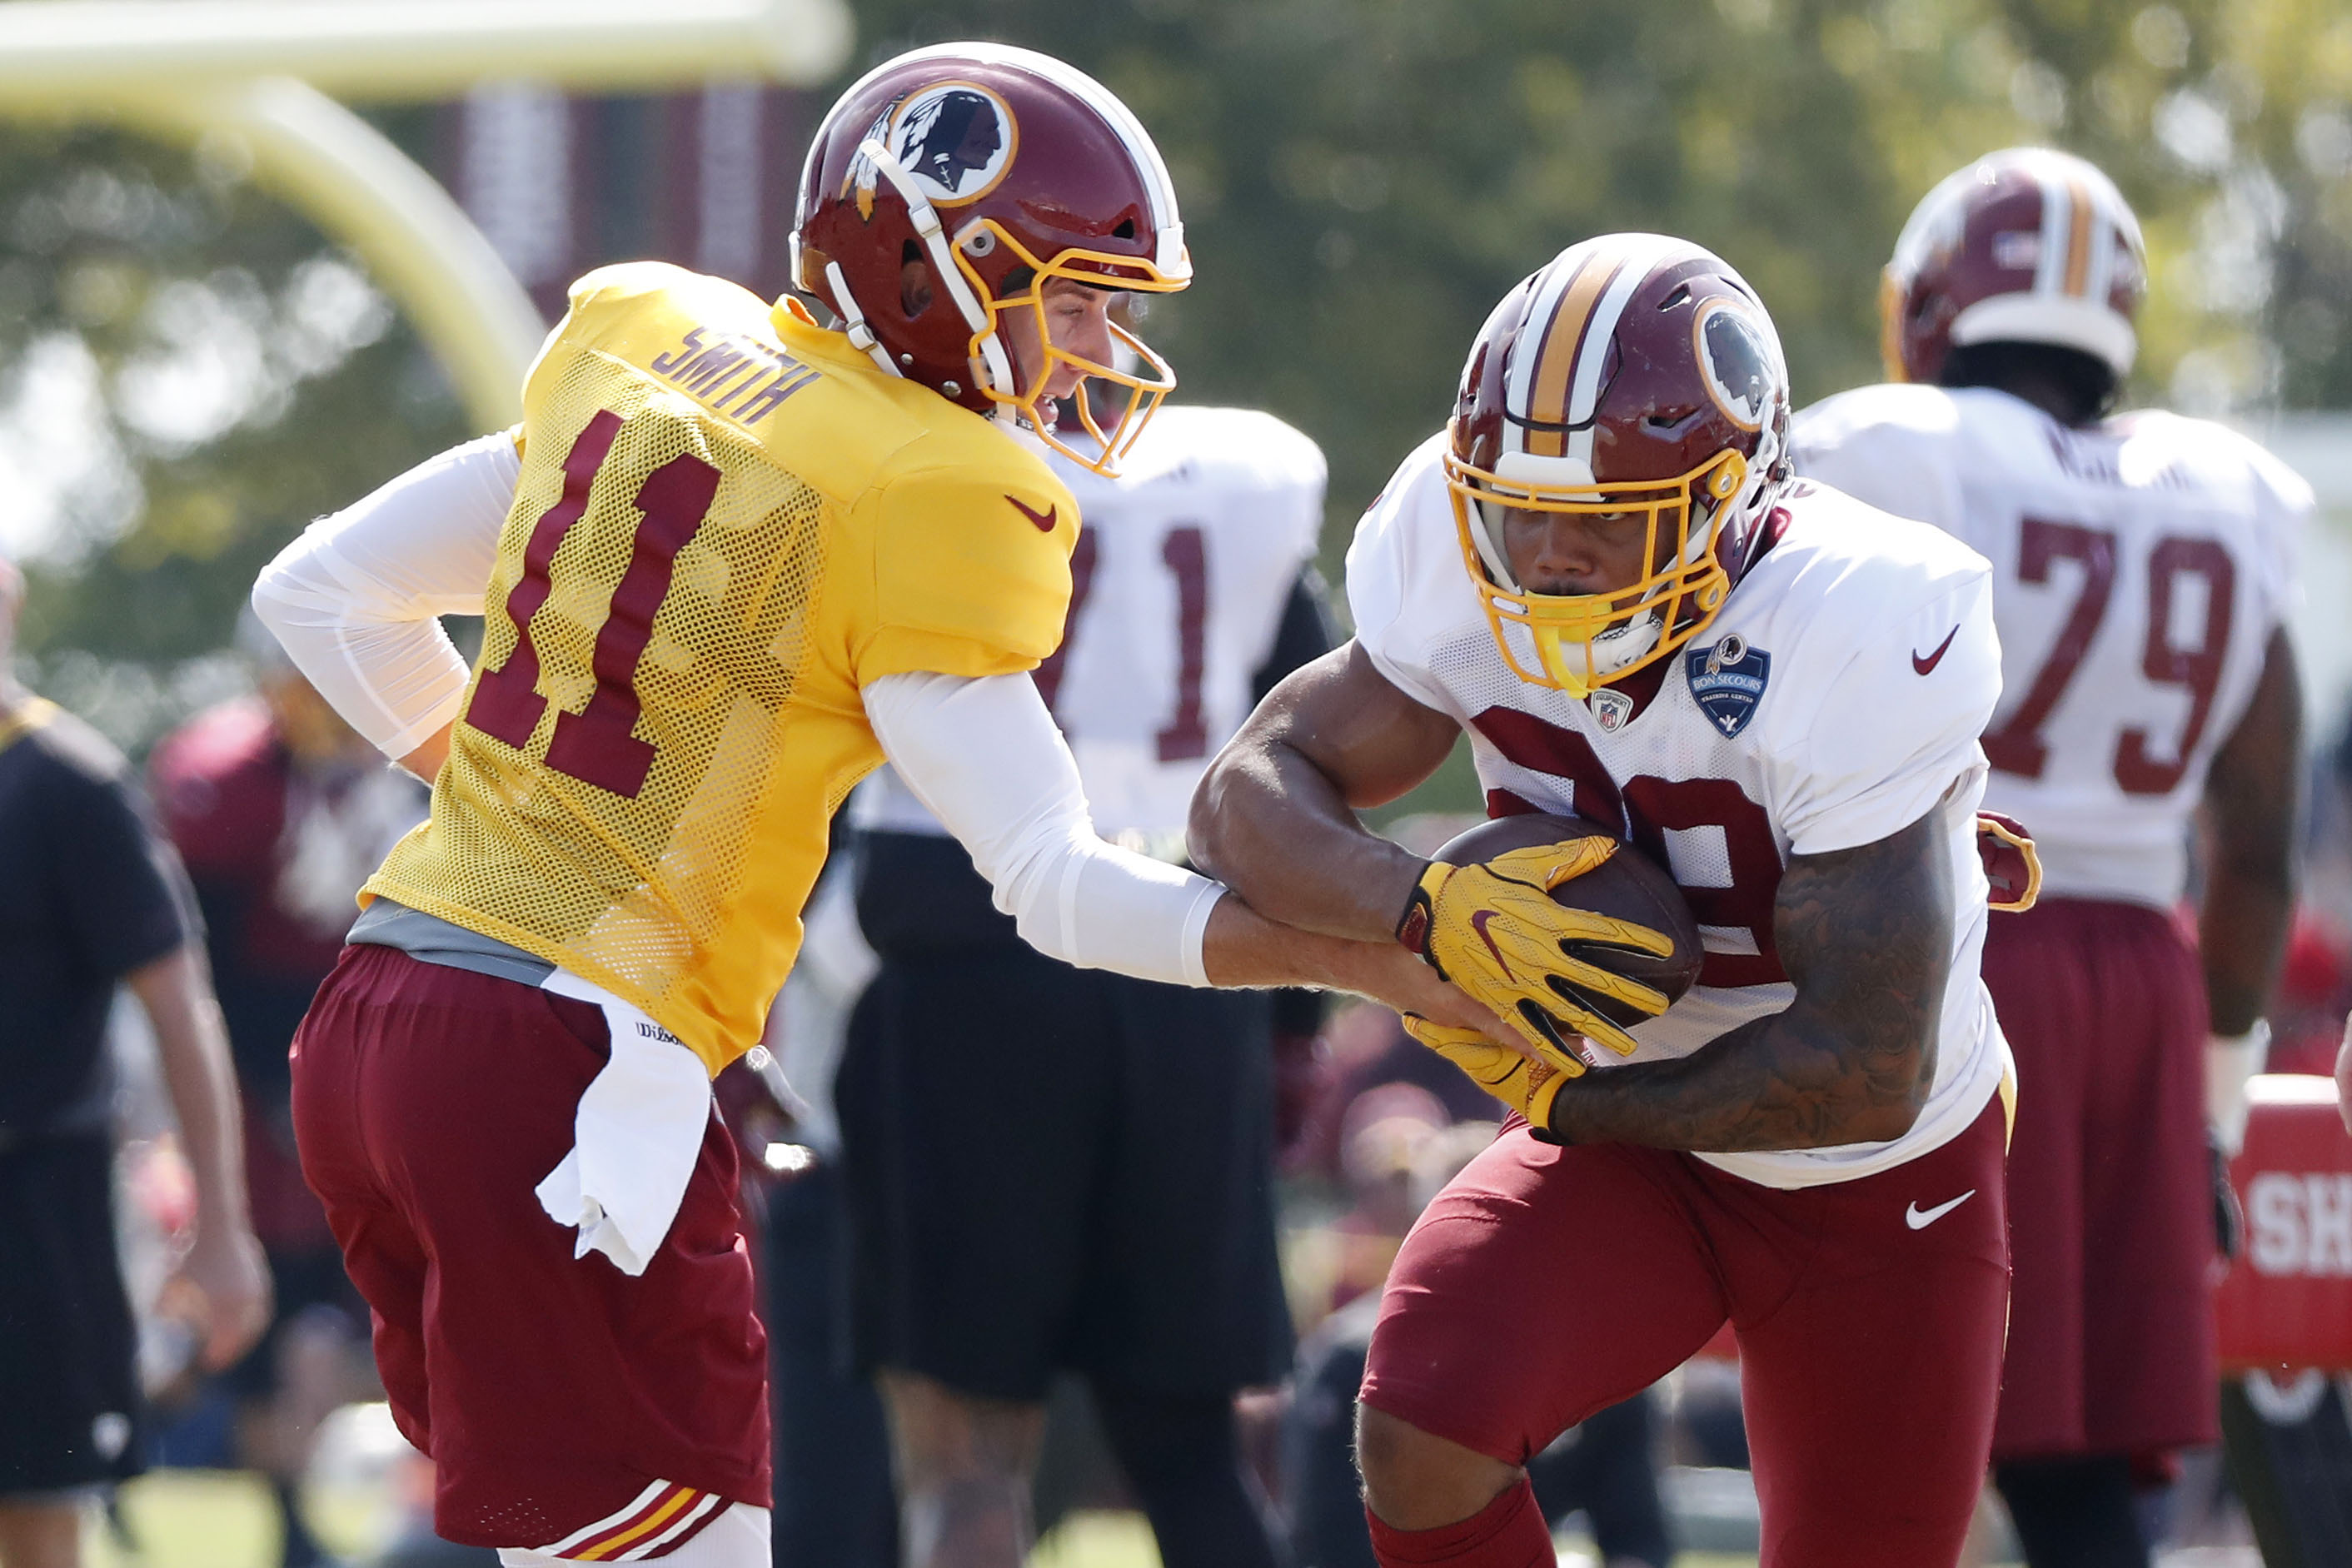 Redskins Rookie Derrius Guice Out For Season With Torn ACL